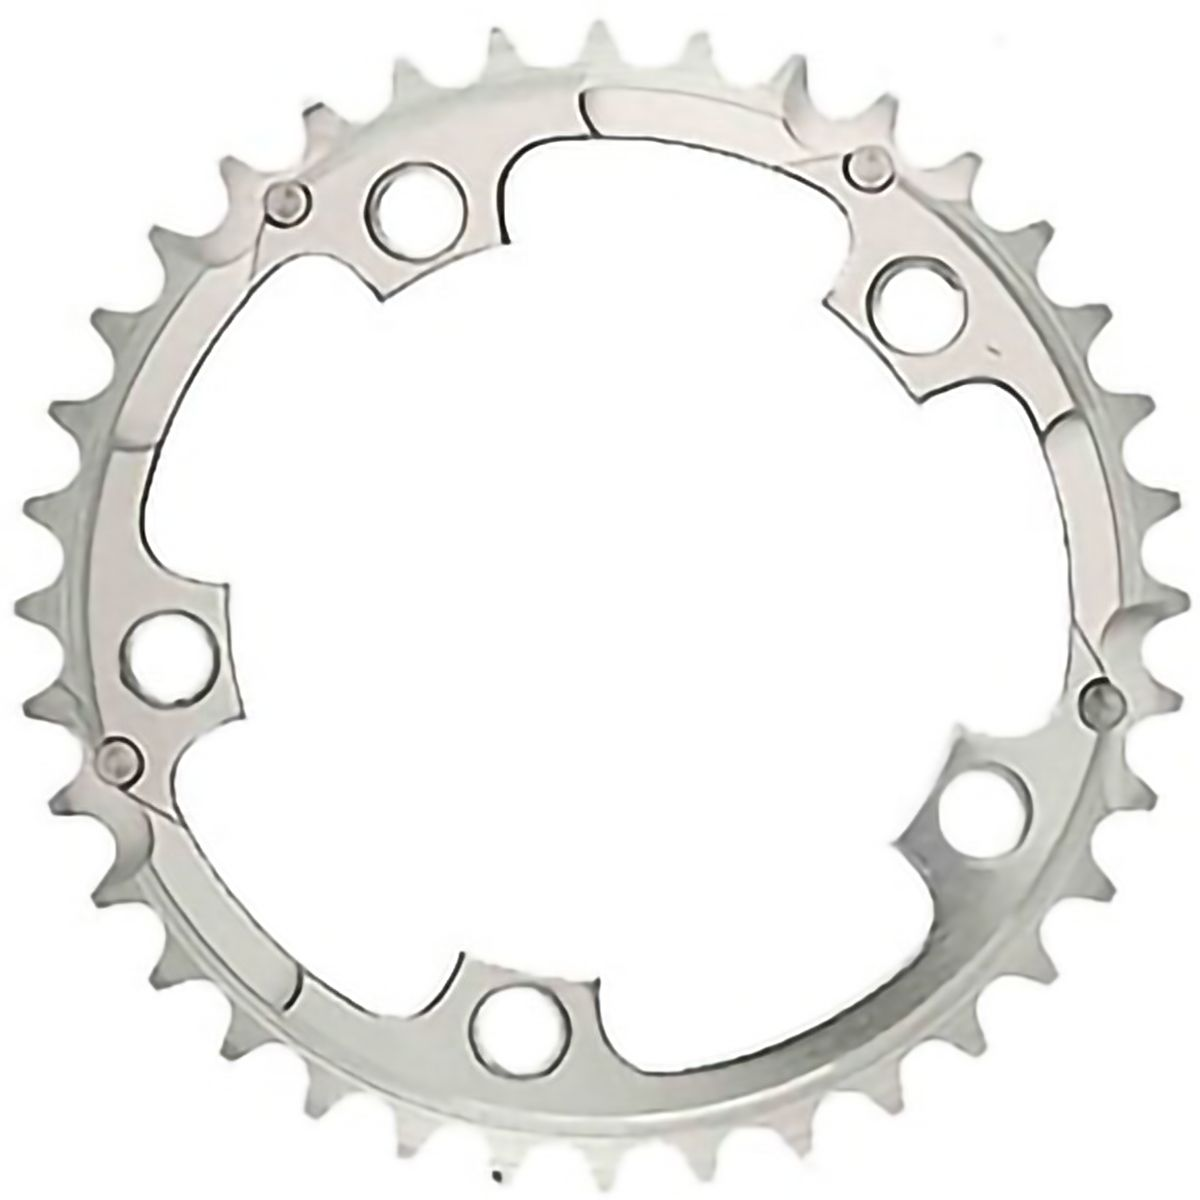 Zephyr 8-/9-/10-speed 36-tooth chainring